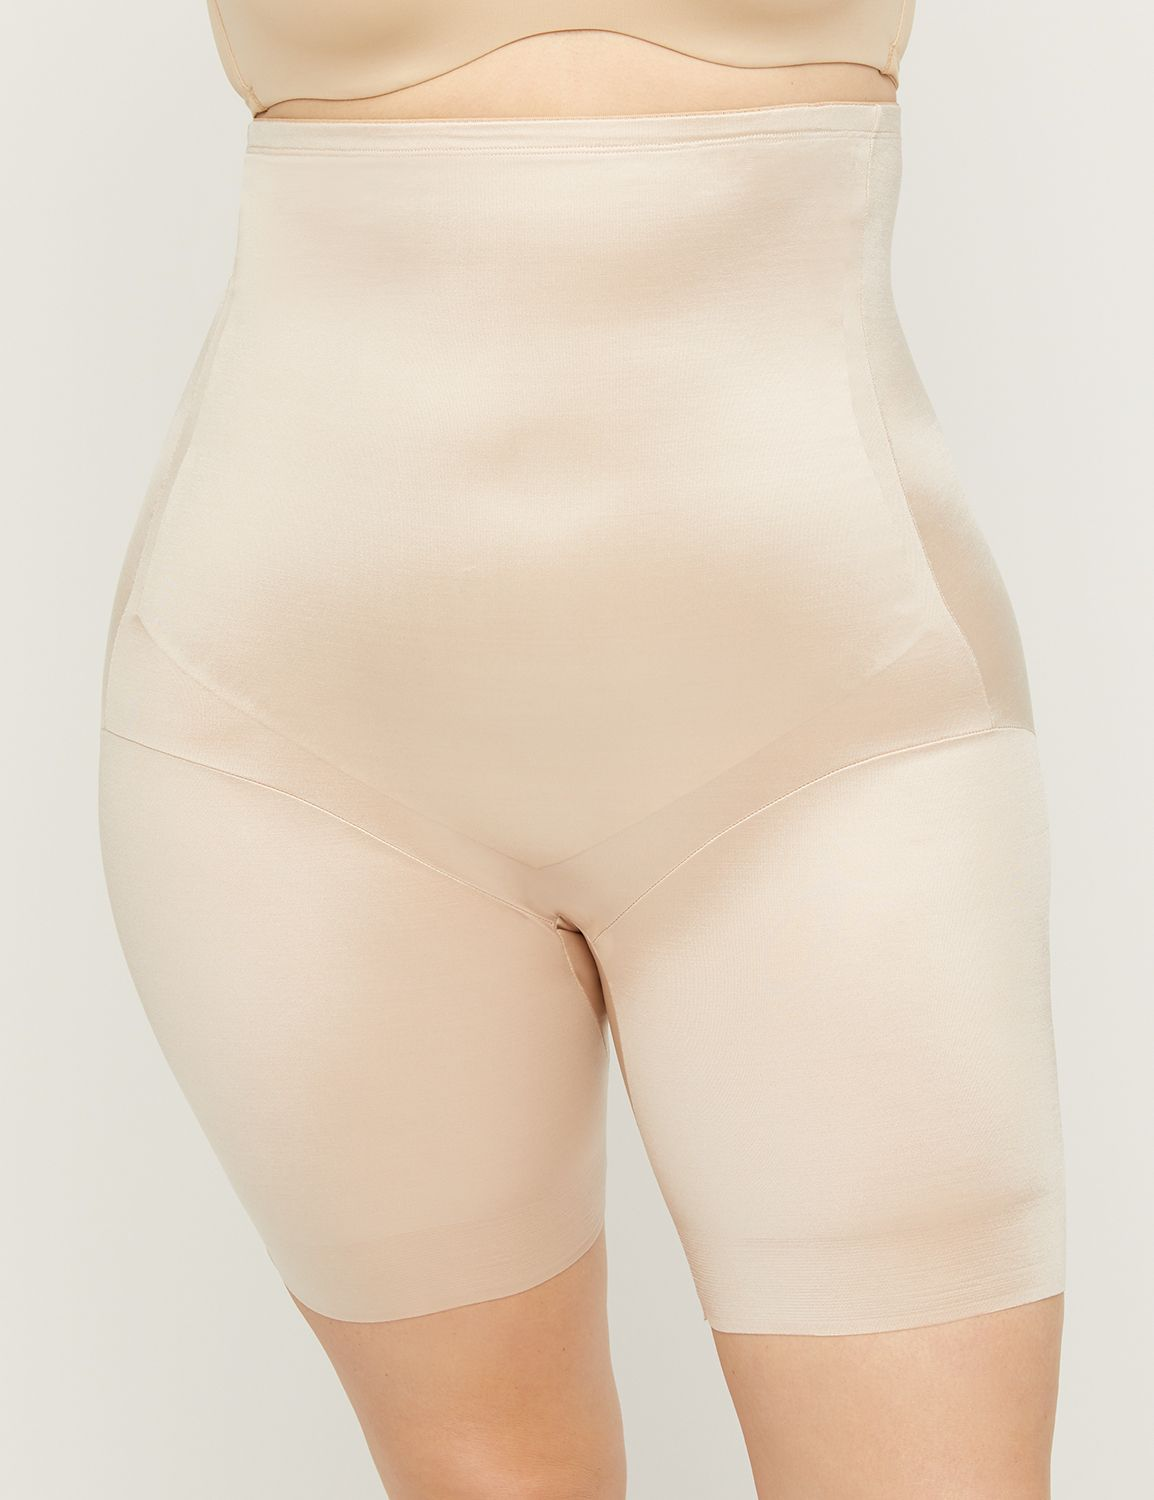 078621b79b0d1 Plus Size Shapewear In Various Styles